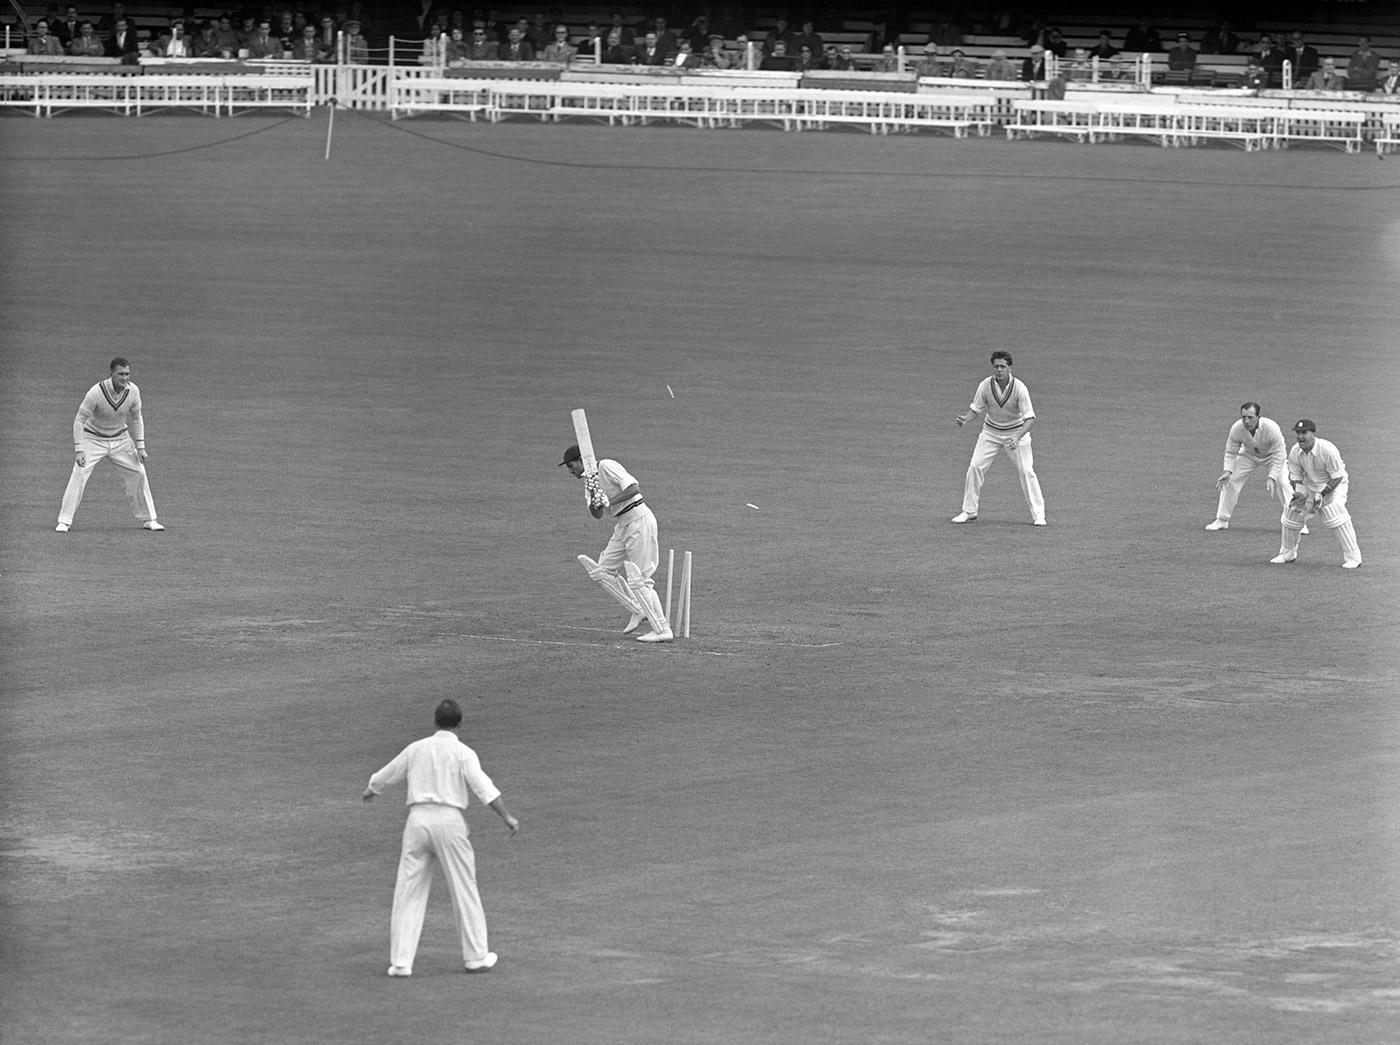 Pakistan's were 87 all out at Lord's in 1954 - Khan Mohammad is bowled by Brian Statham here - but they scrapped for more than 80 overs